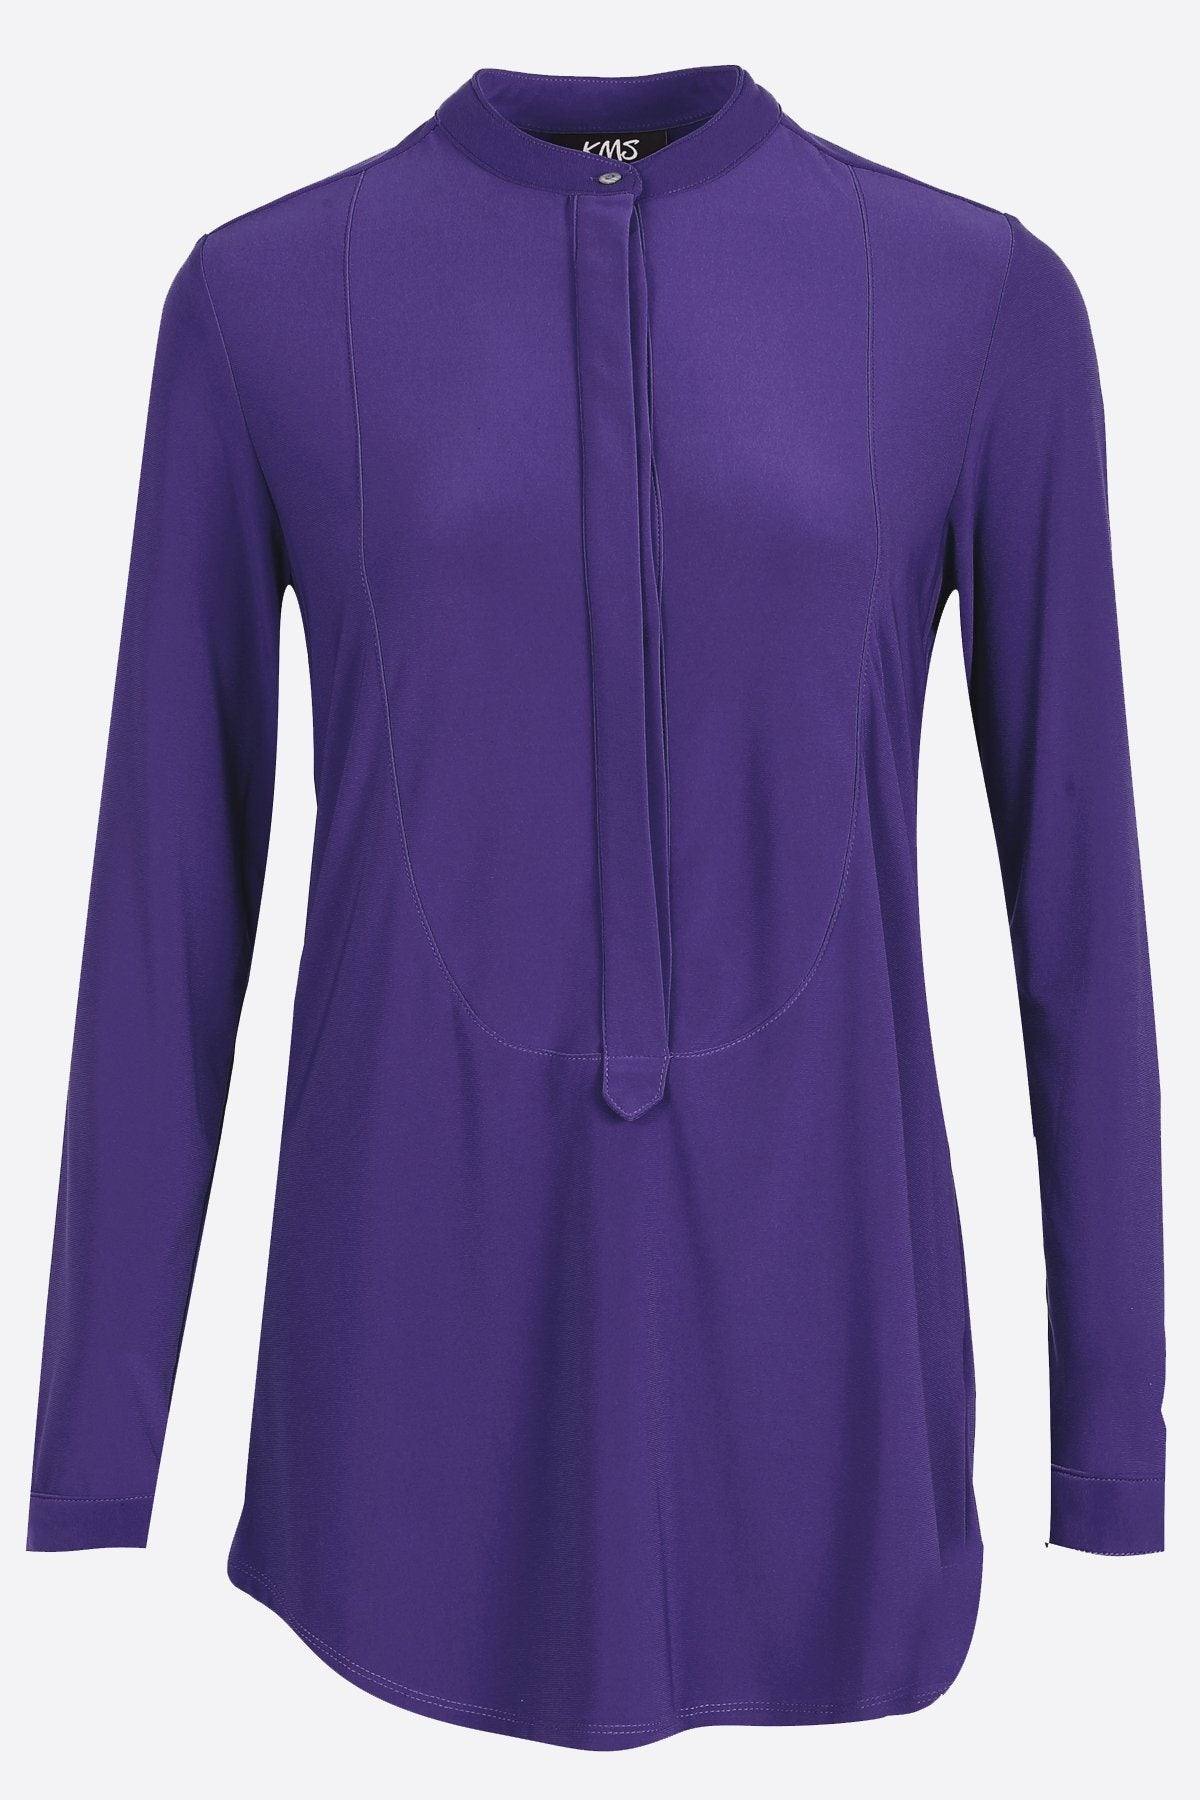 Women's Purple Long Sleeve Half Button Down Shirt Rosarini